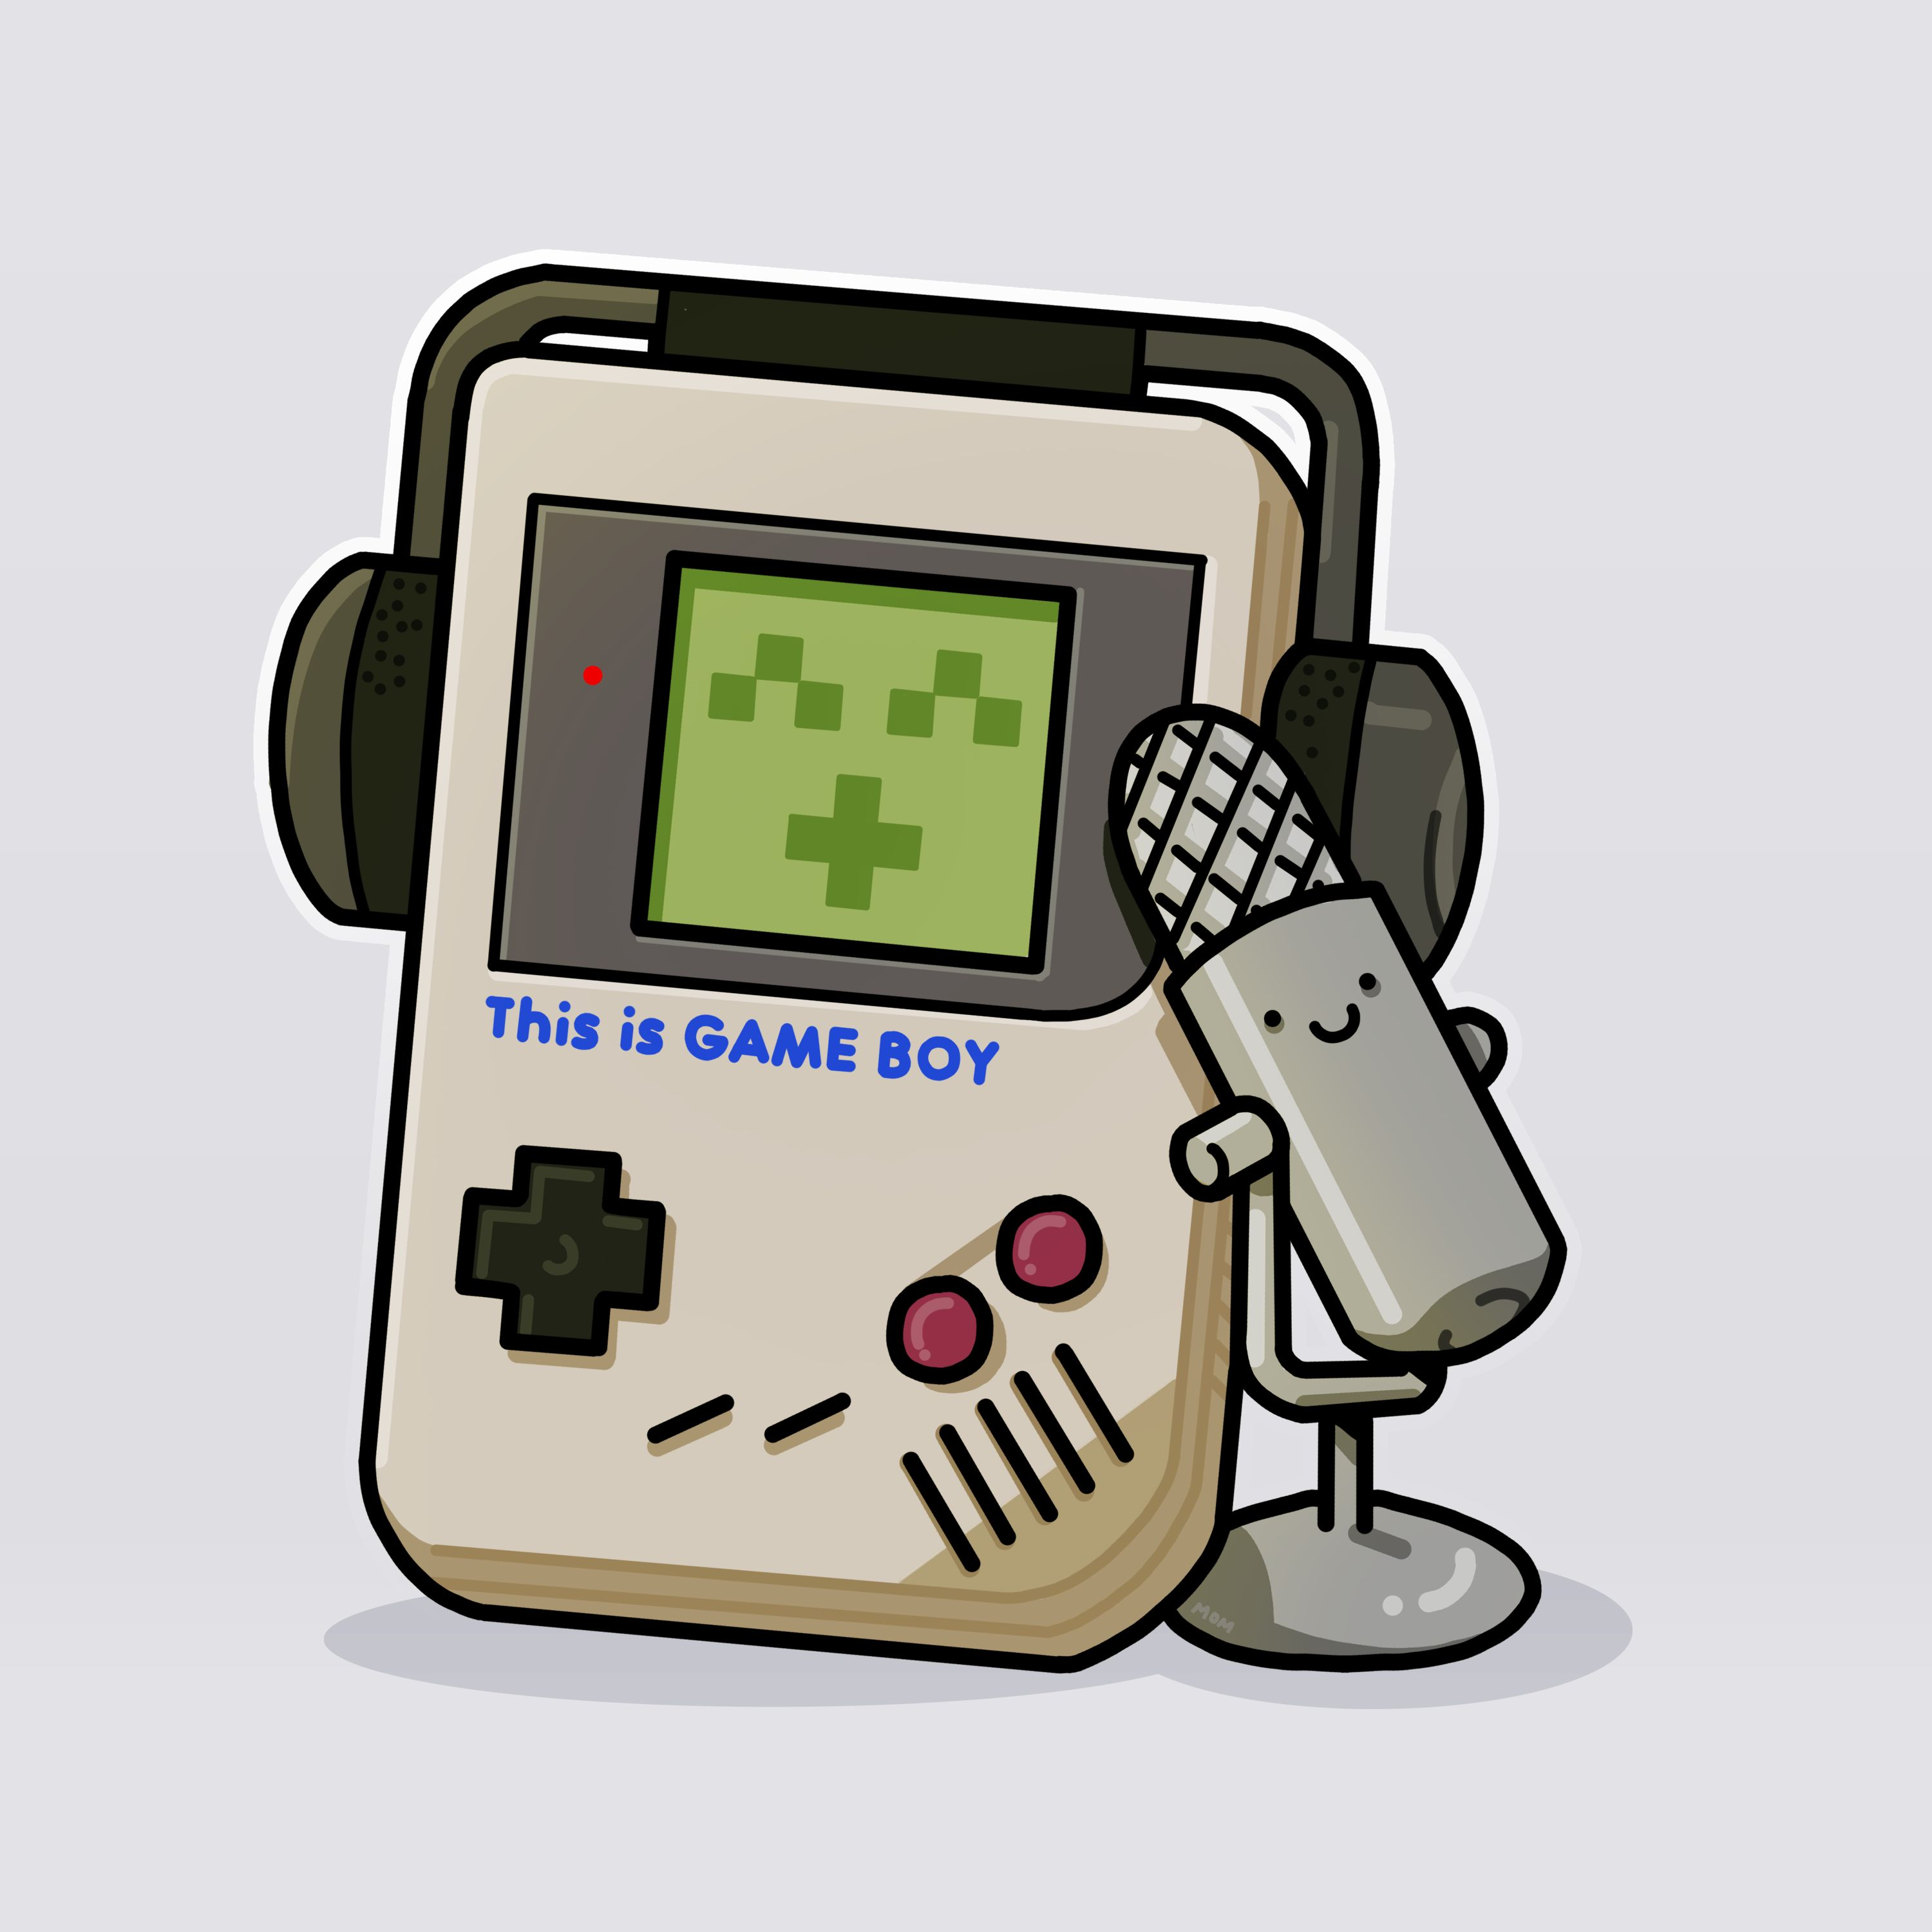 This is Game Boy